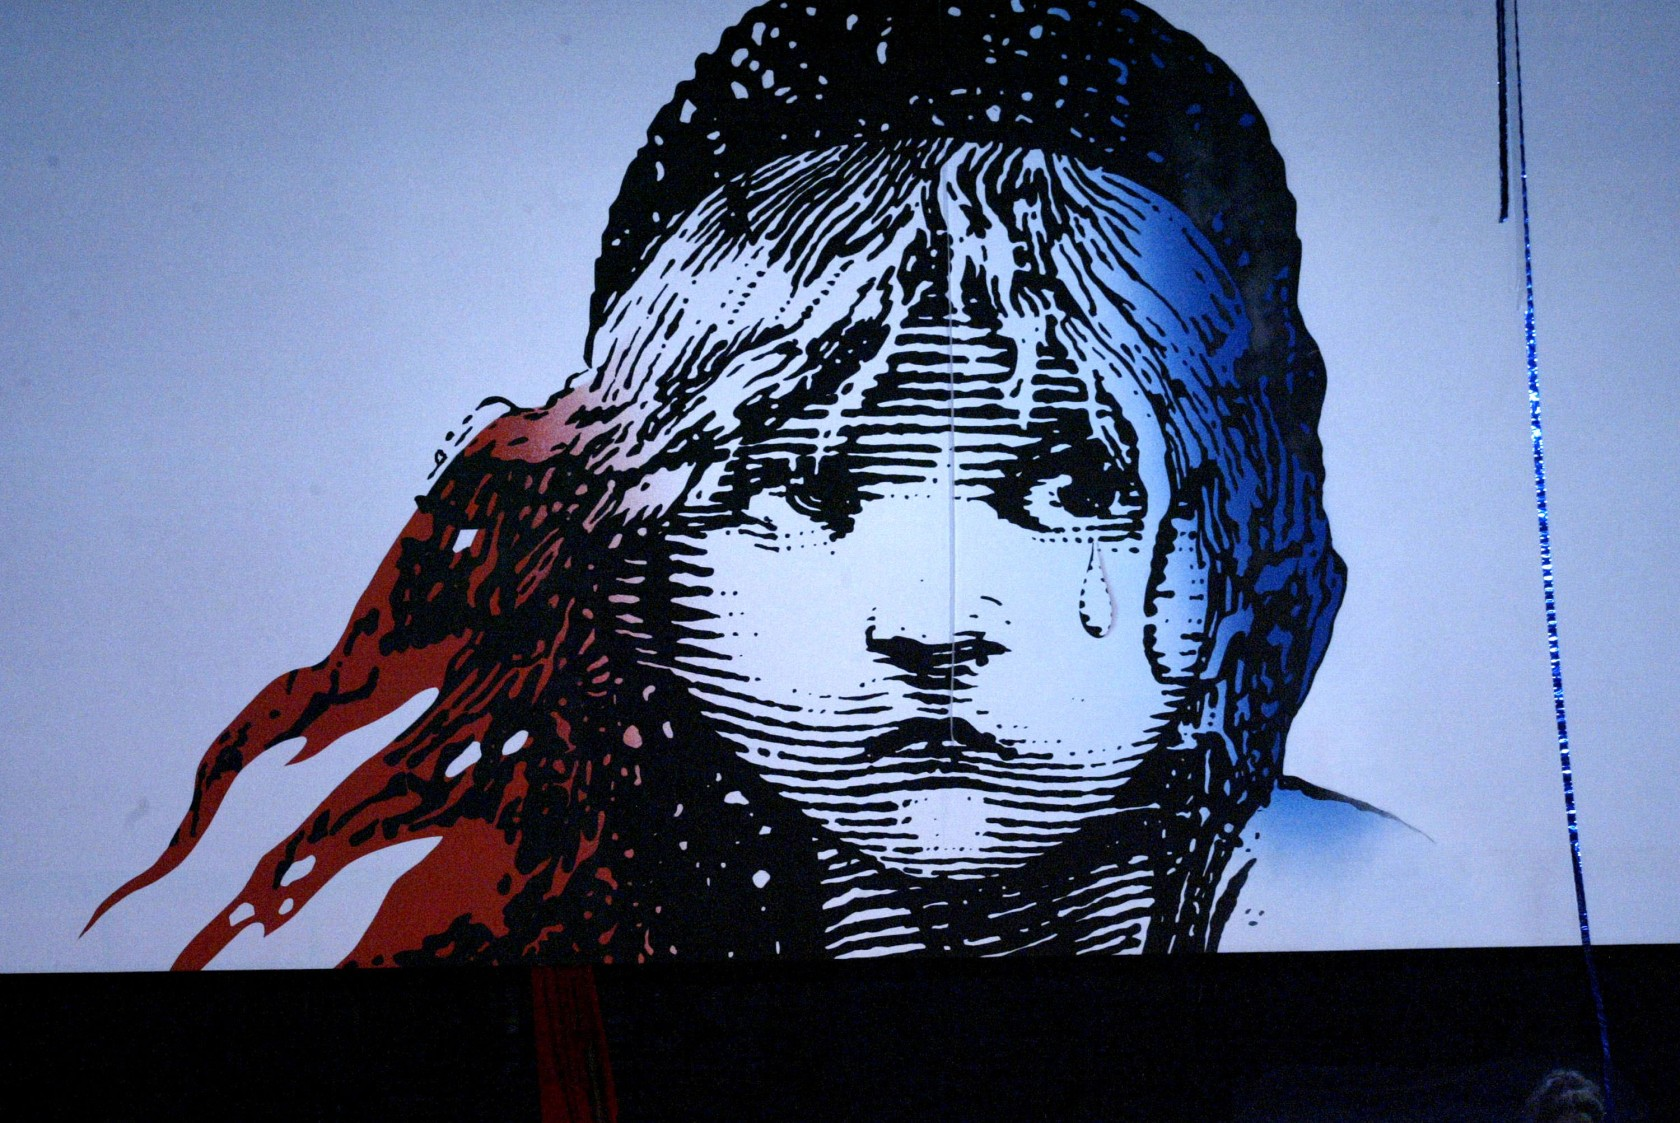 The Final Performance of Broadway's Long-Running Tony Award-Winning Musical 'Les Miserables'